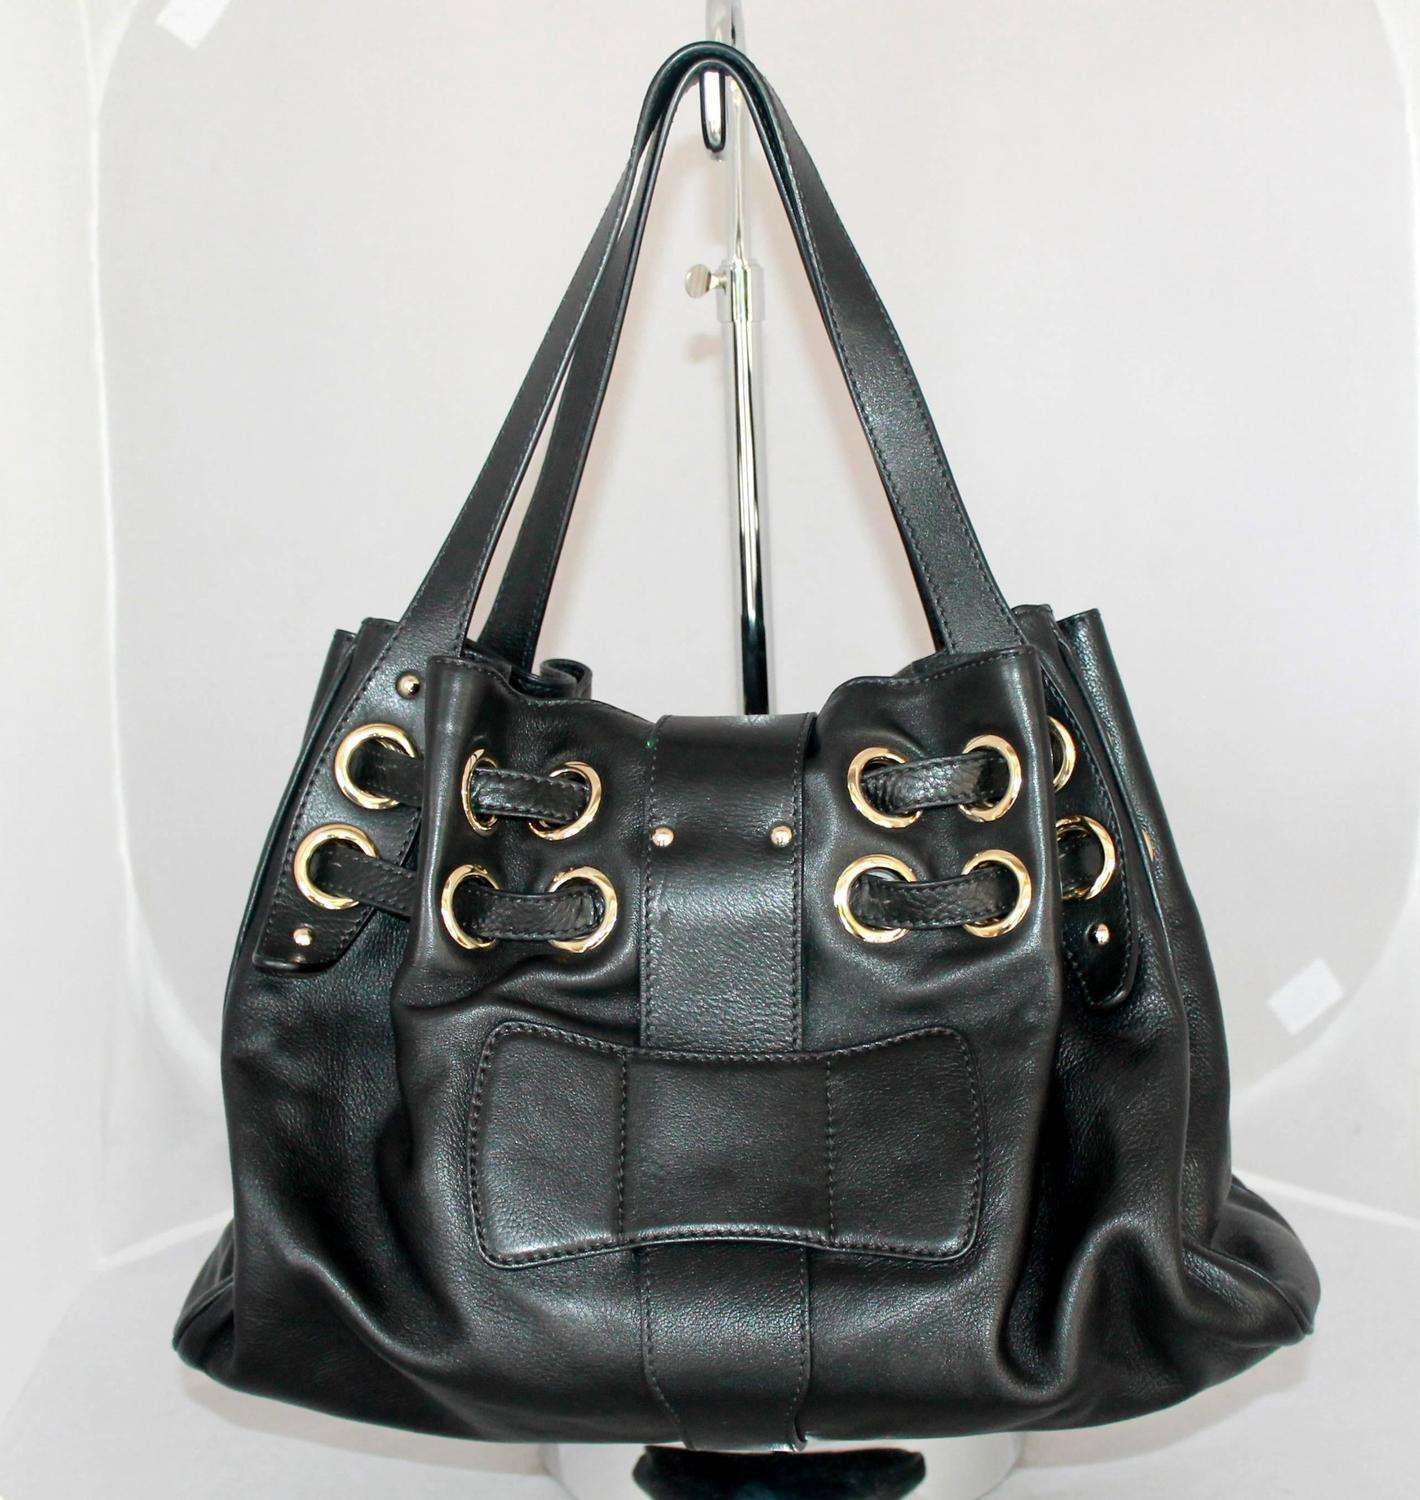 Jimmy Choo Parfums Black Tote Bag Evening Weekender Travel Handbag Purse NWOT Brand new Jimmy Choo Fragrances Limited Edition Tote Bag/Purse. Bag is Black. 2 leather-like drop down handles. on the fr Jimmy Choo Women Parfums Tote Bag .